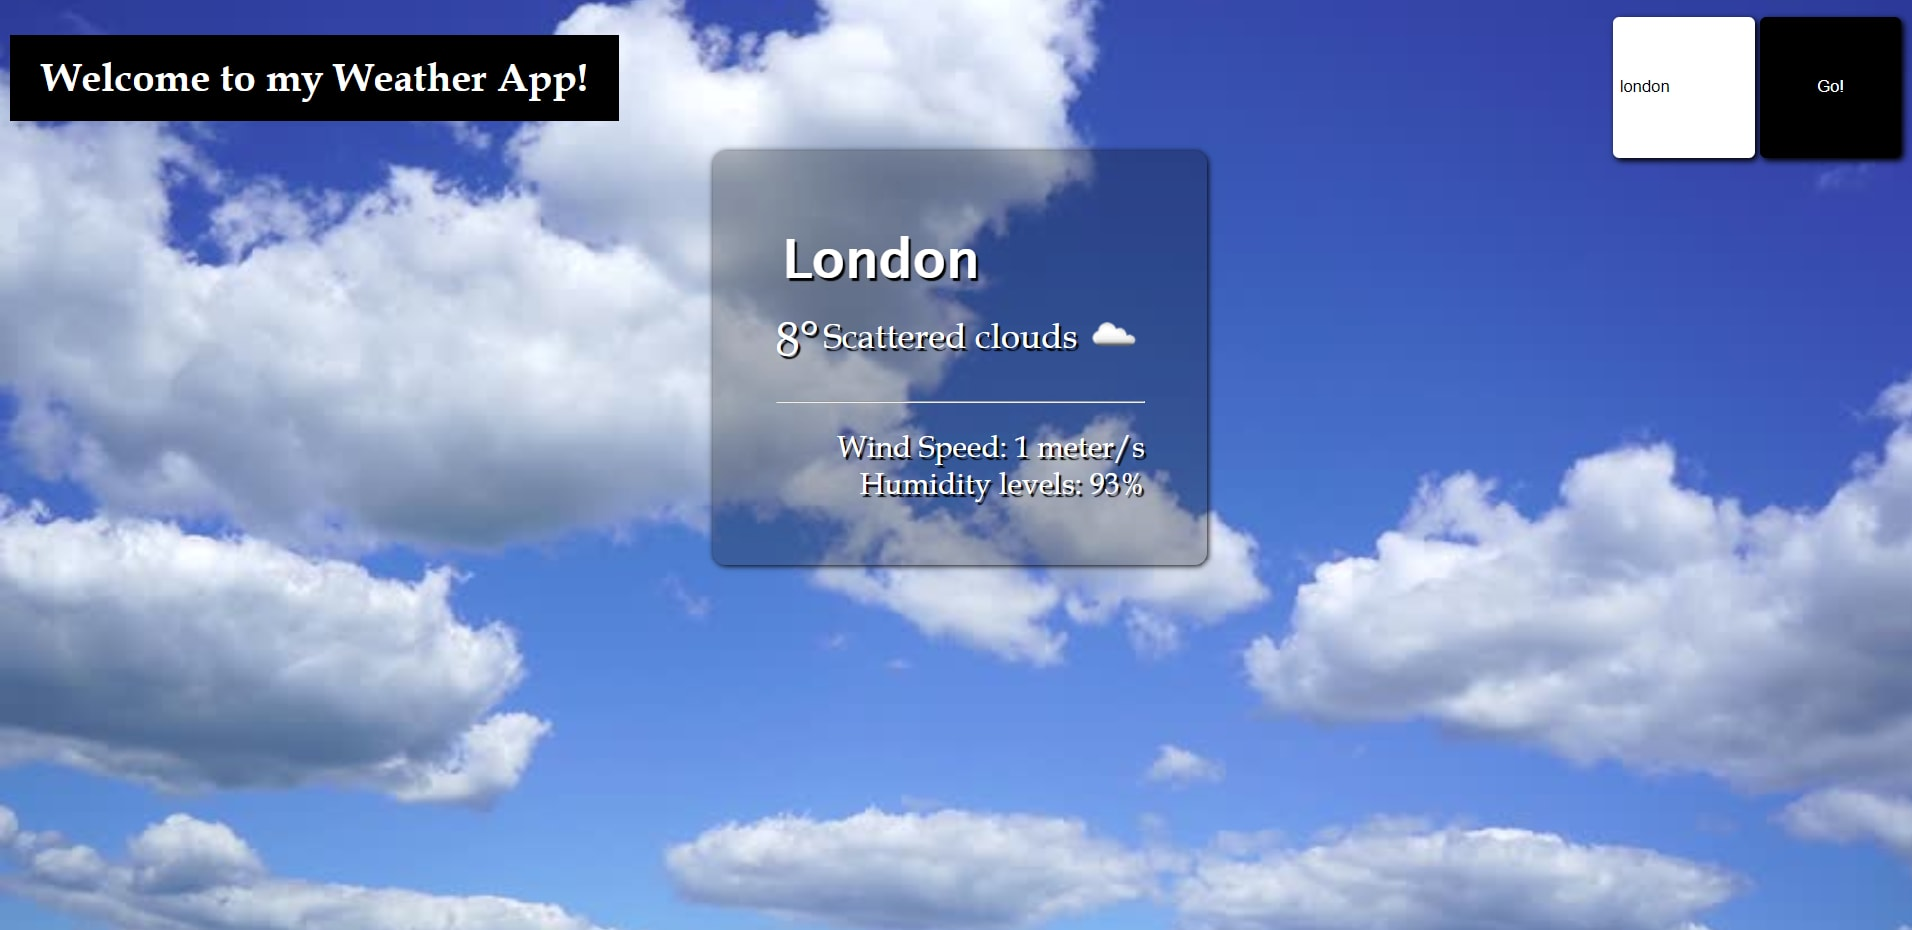 image of weather app